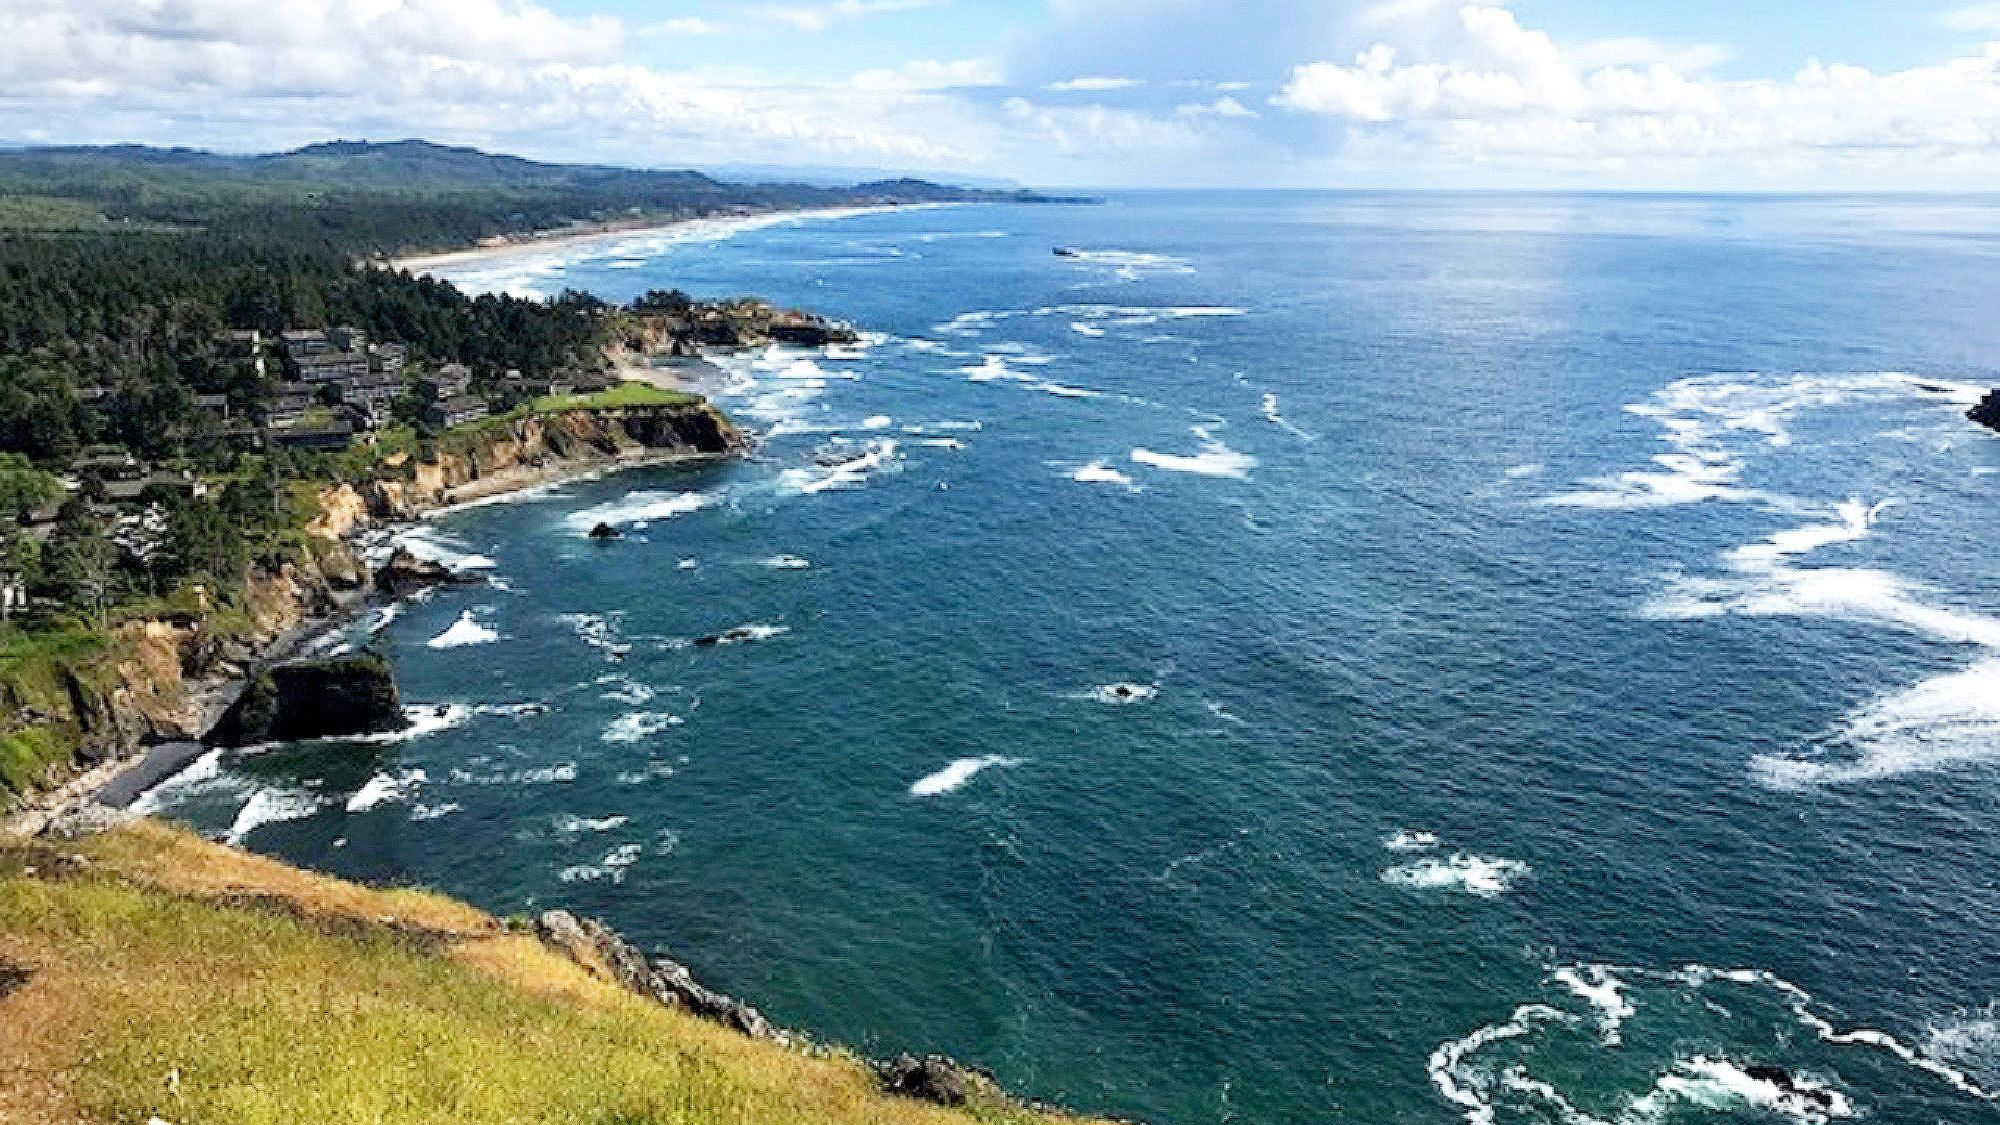 View of coastal cliffs from bluff in Oregon